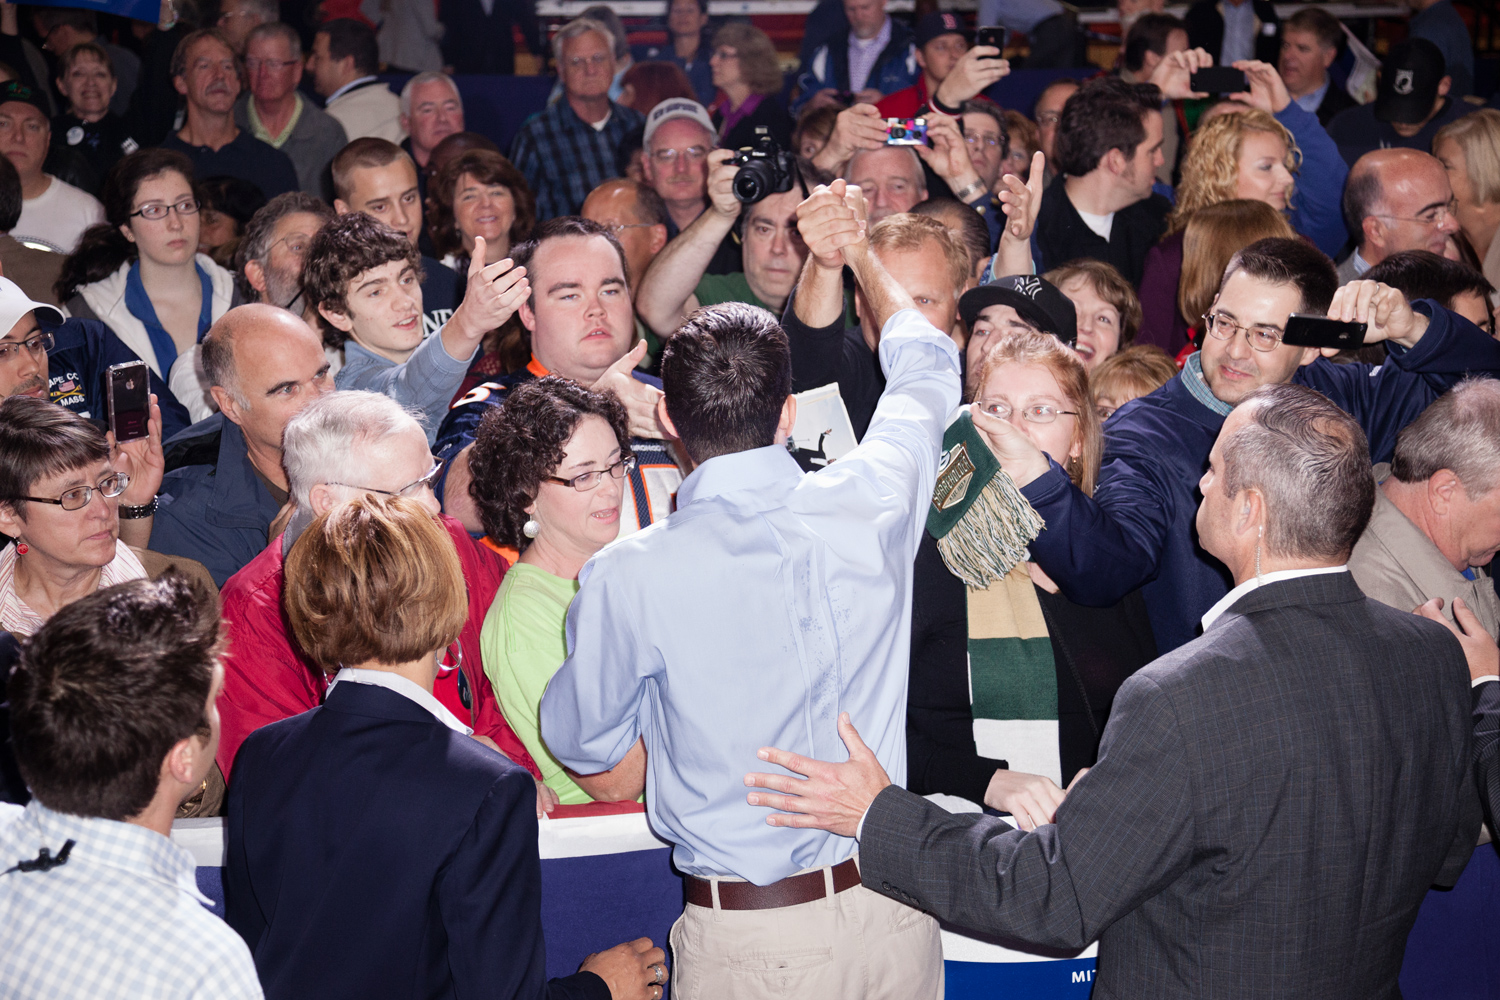 """Paul Ryan shakes hands in the crowd at the  Earn It  rally in Derry, N.H. Sept. 29, 2012. The event was part of the campaign's """"Earn It"""" day of volunteering."""